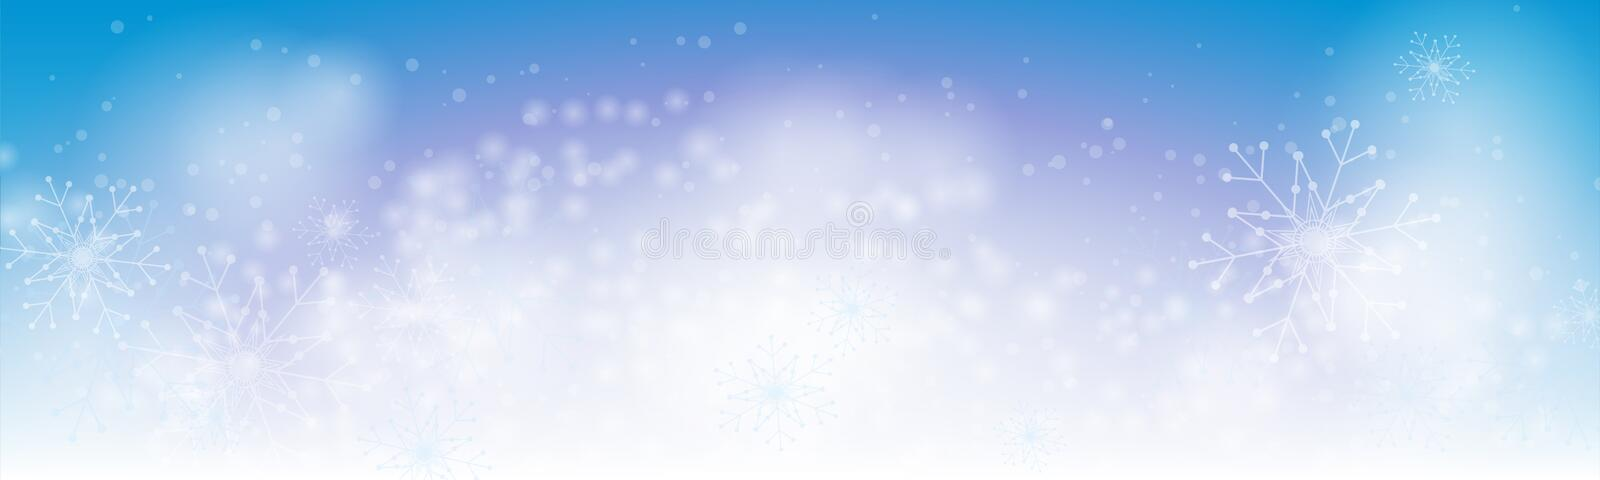 Christmas winter blue banner background with abstract snowflakes royalty free illustration